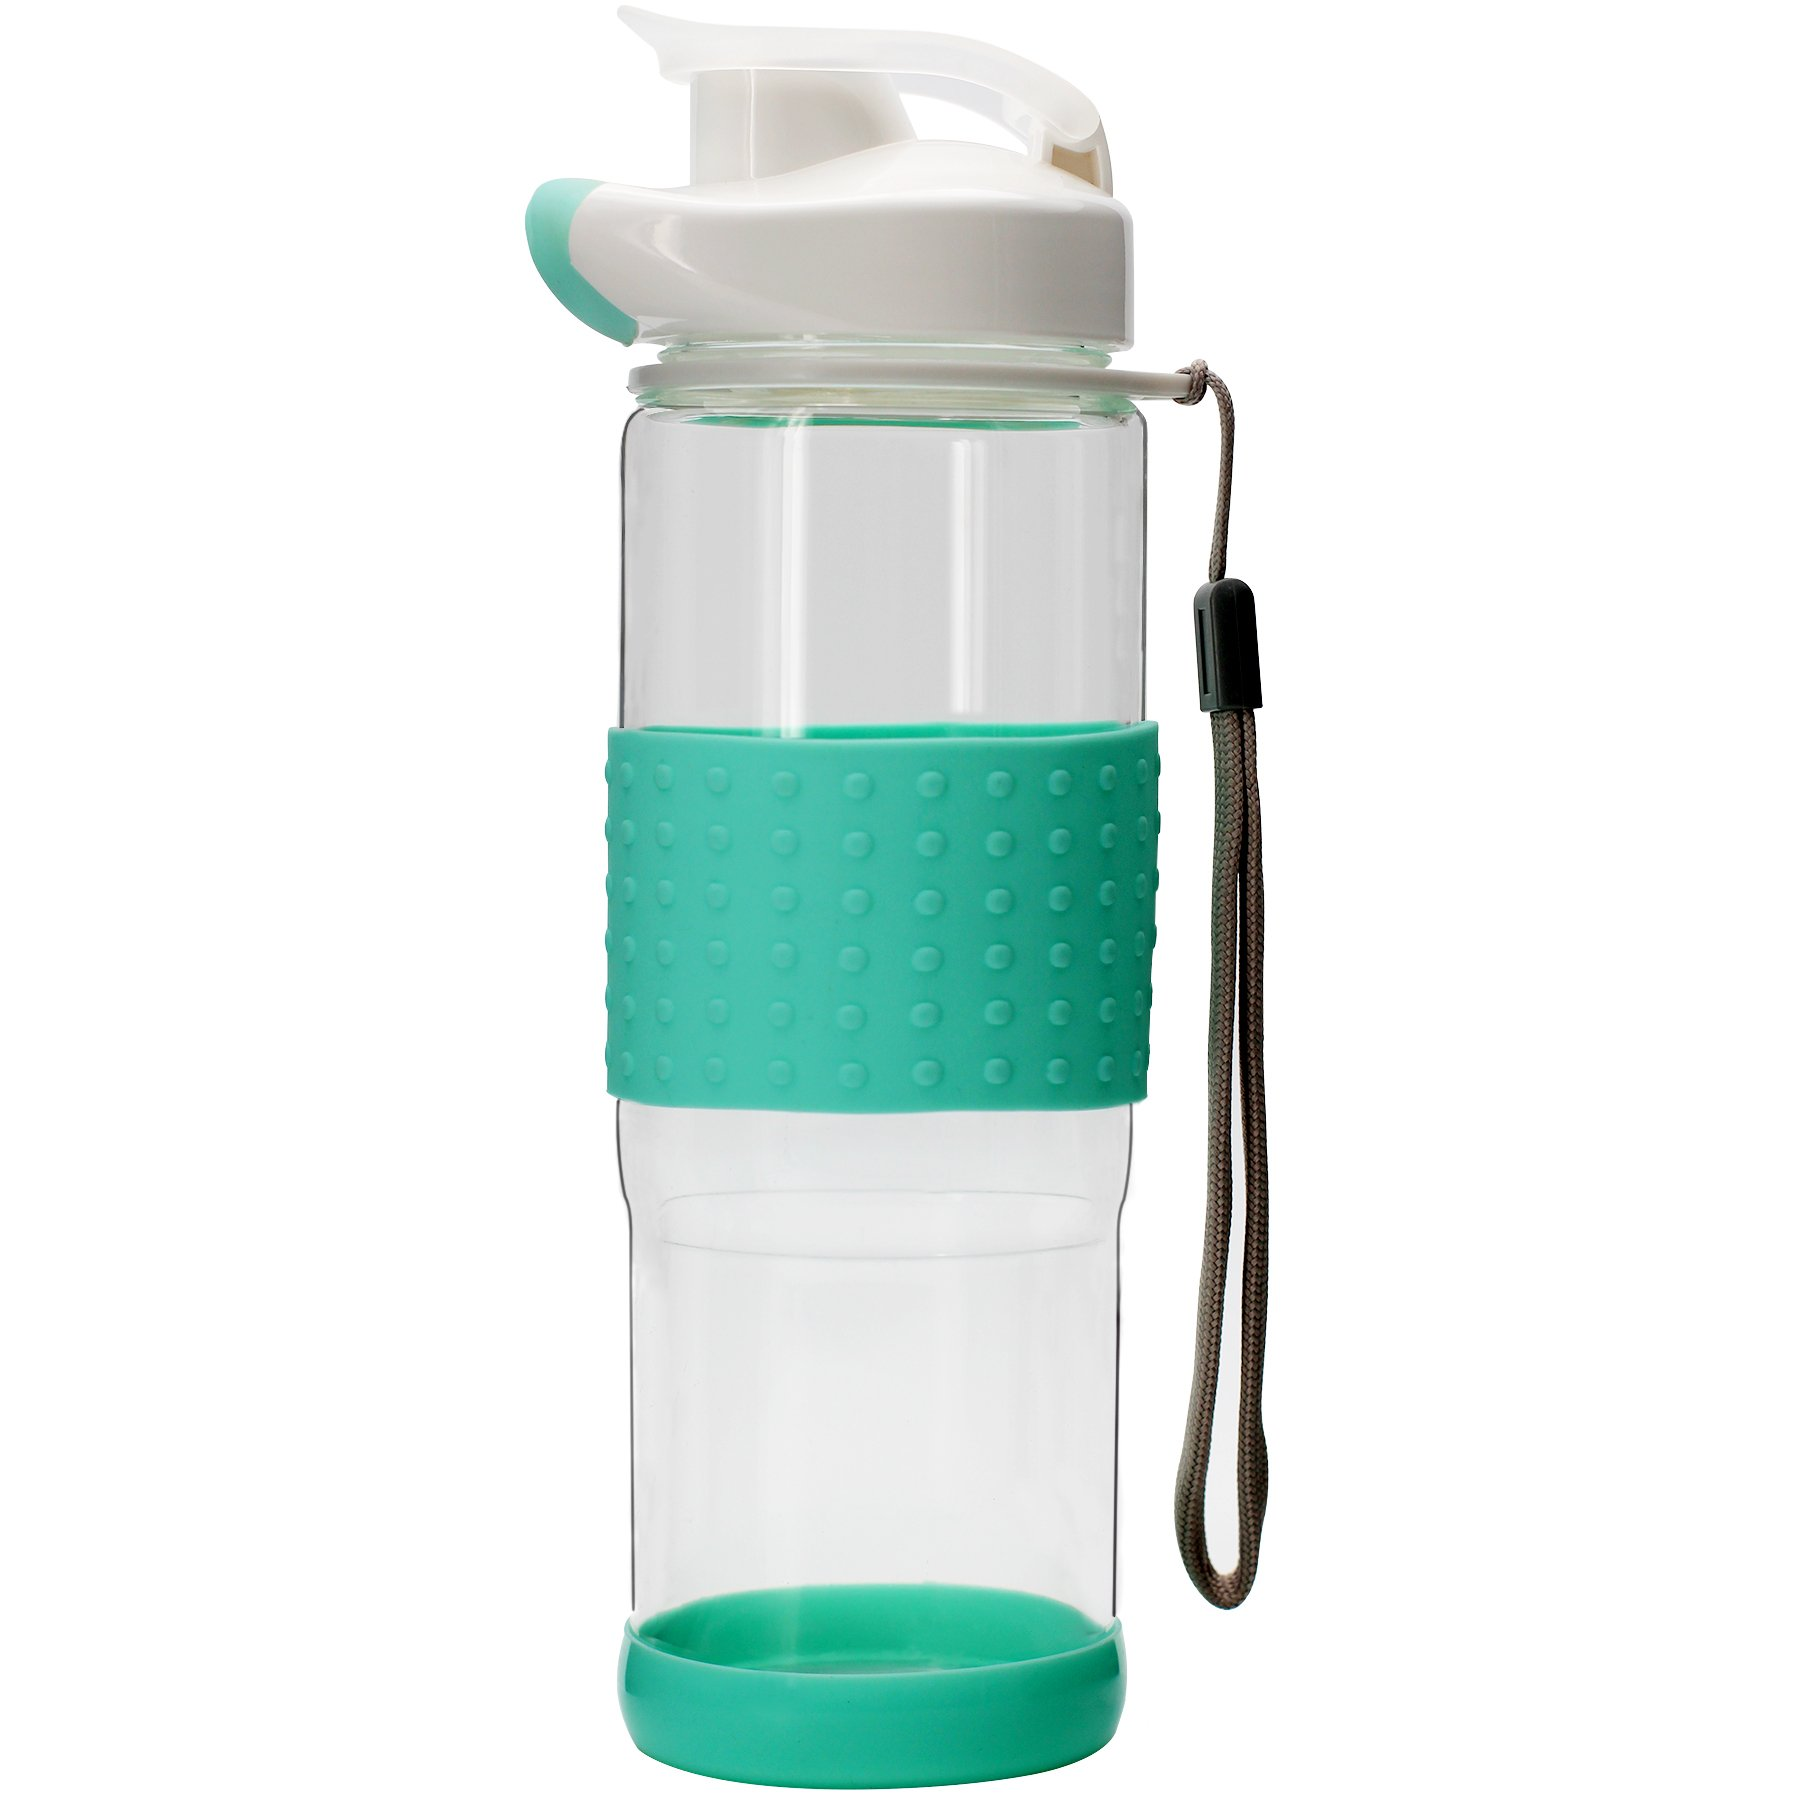 Bonison Flip Top Glass Water Bottle Silicone Wrap Glass Bottle Wide Mouth Spout Bottle BPA Free Lead Free Drinking Cup with Flip Top Lid Spout Cap Carrying Handle String-18.5 oz